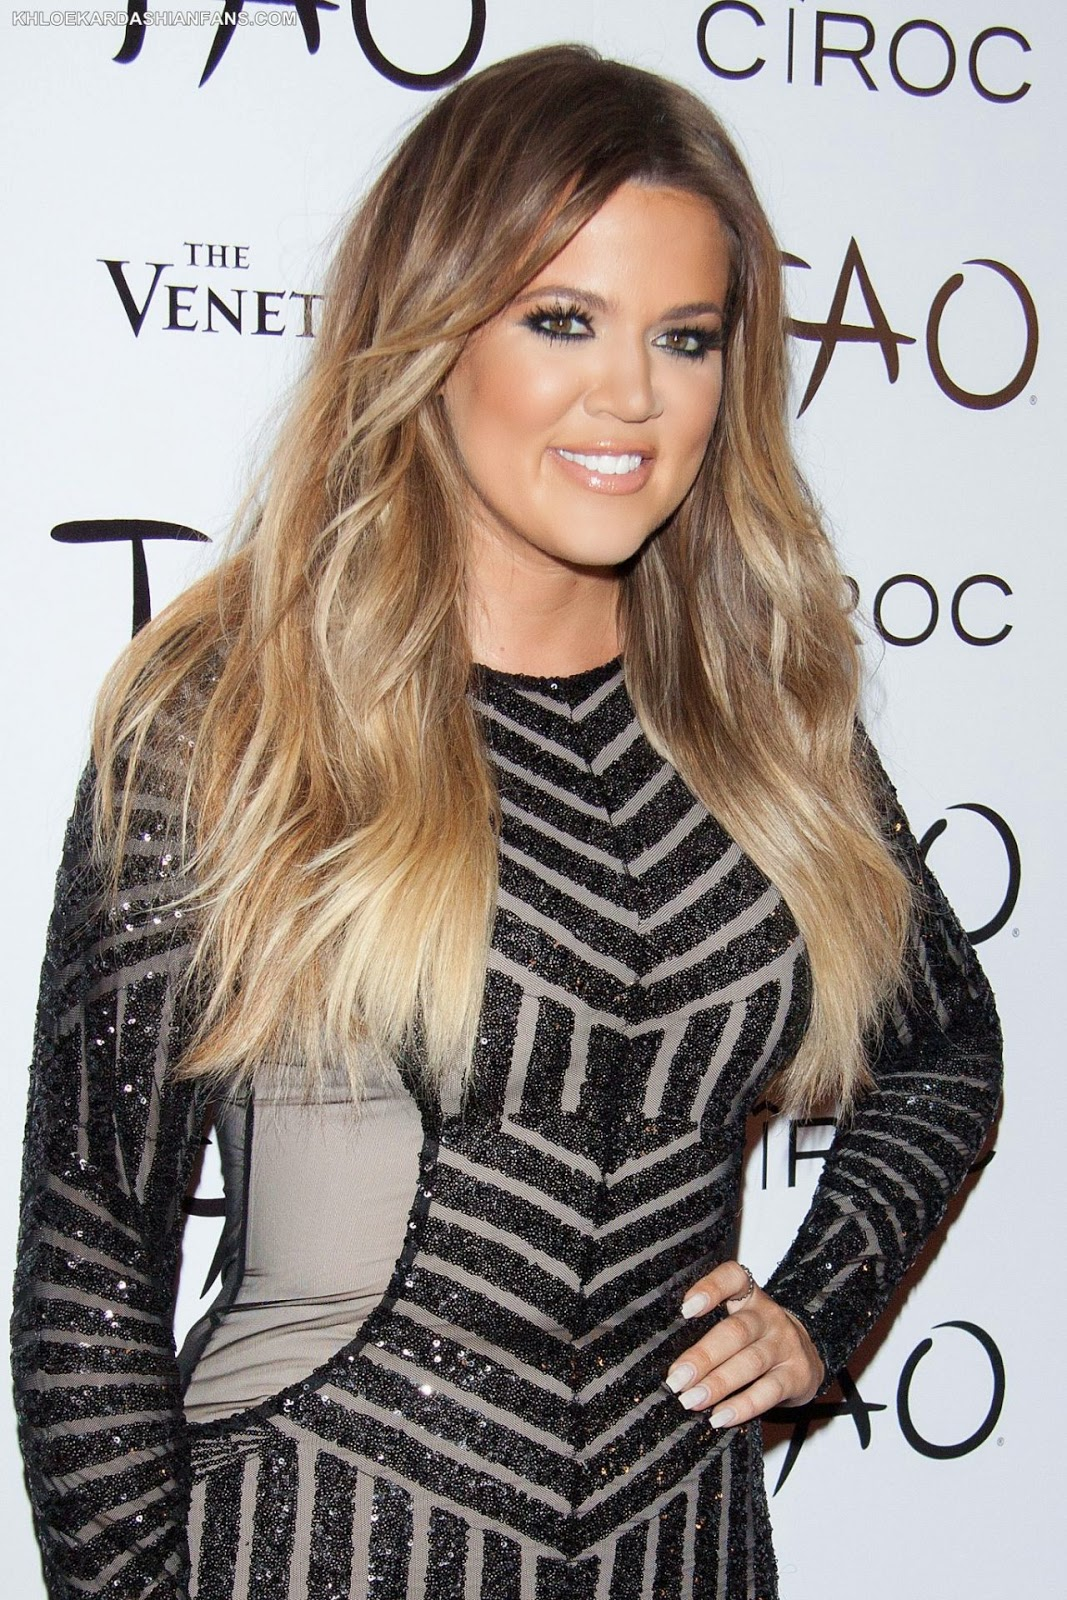 Khloe Kardashian celebrates 30th birthday in a sequinned mini-dress in Las Vegas